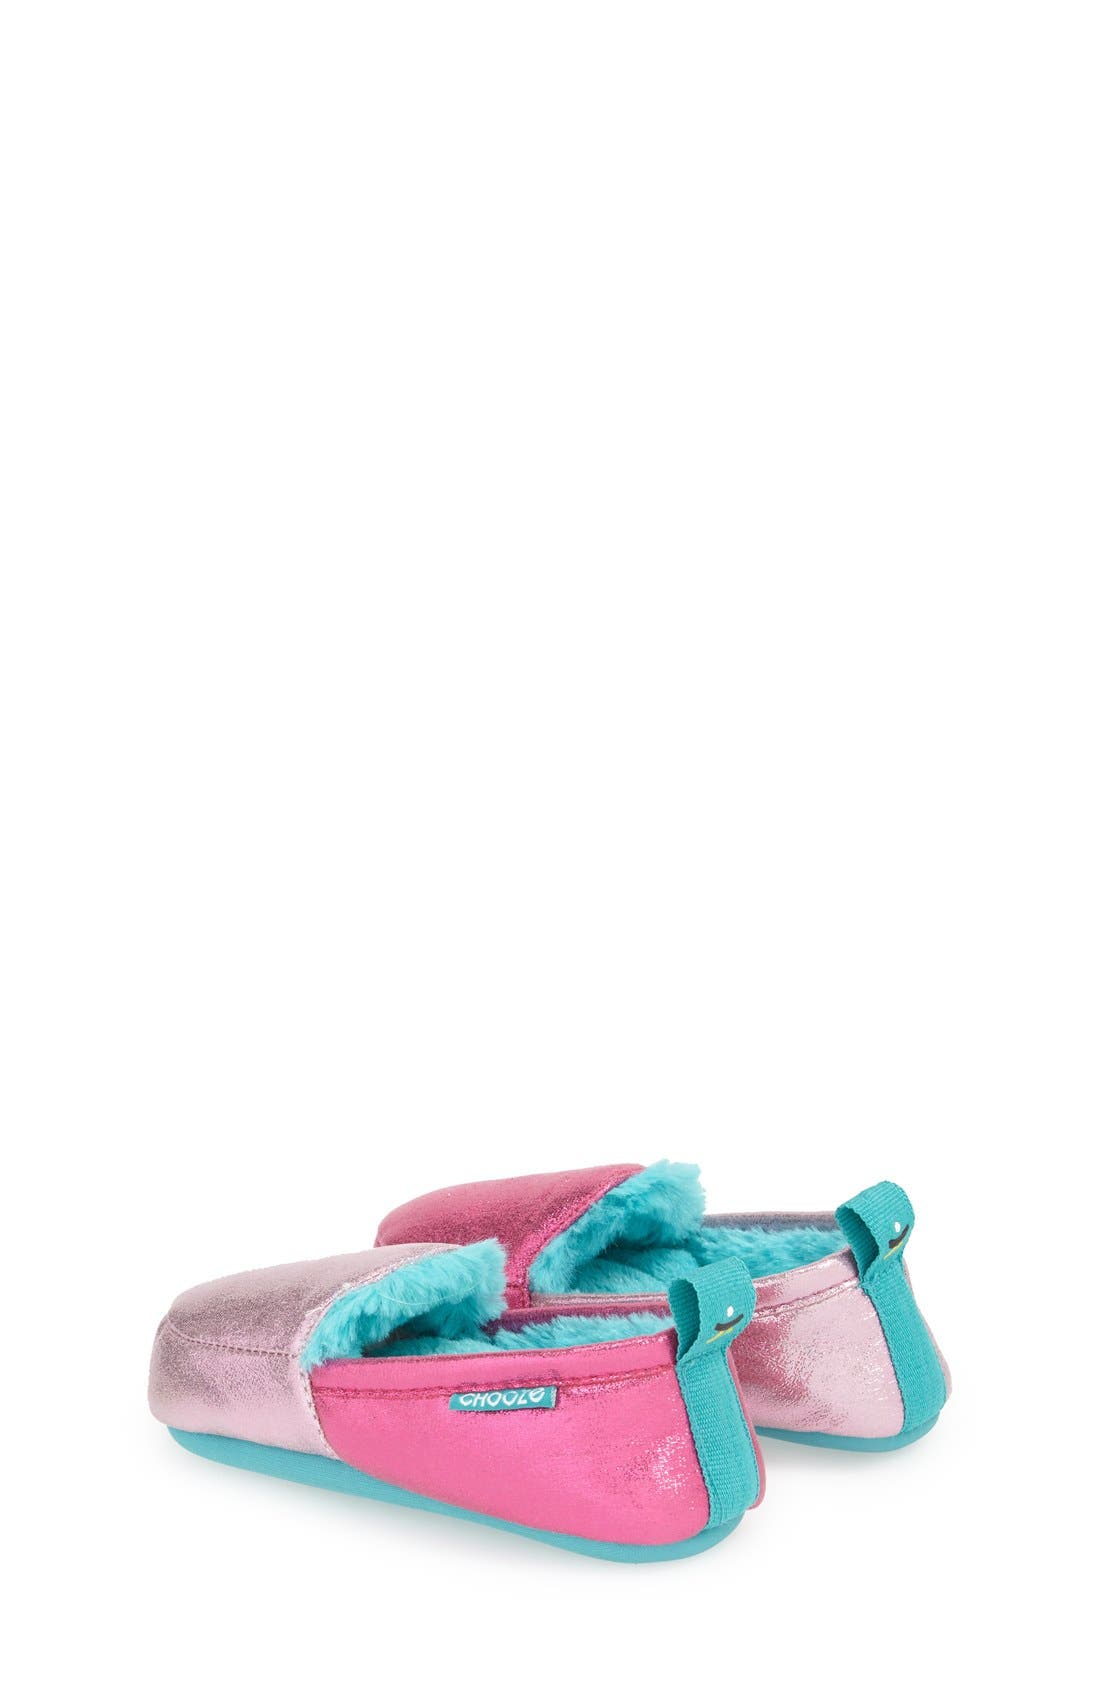 'Slumber' Slippers,                             Alternate thumbnail 68, color,